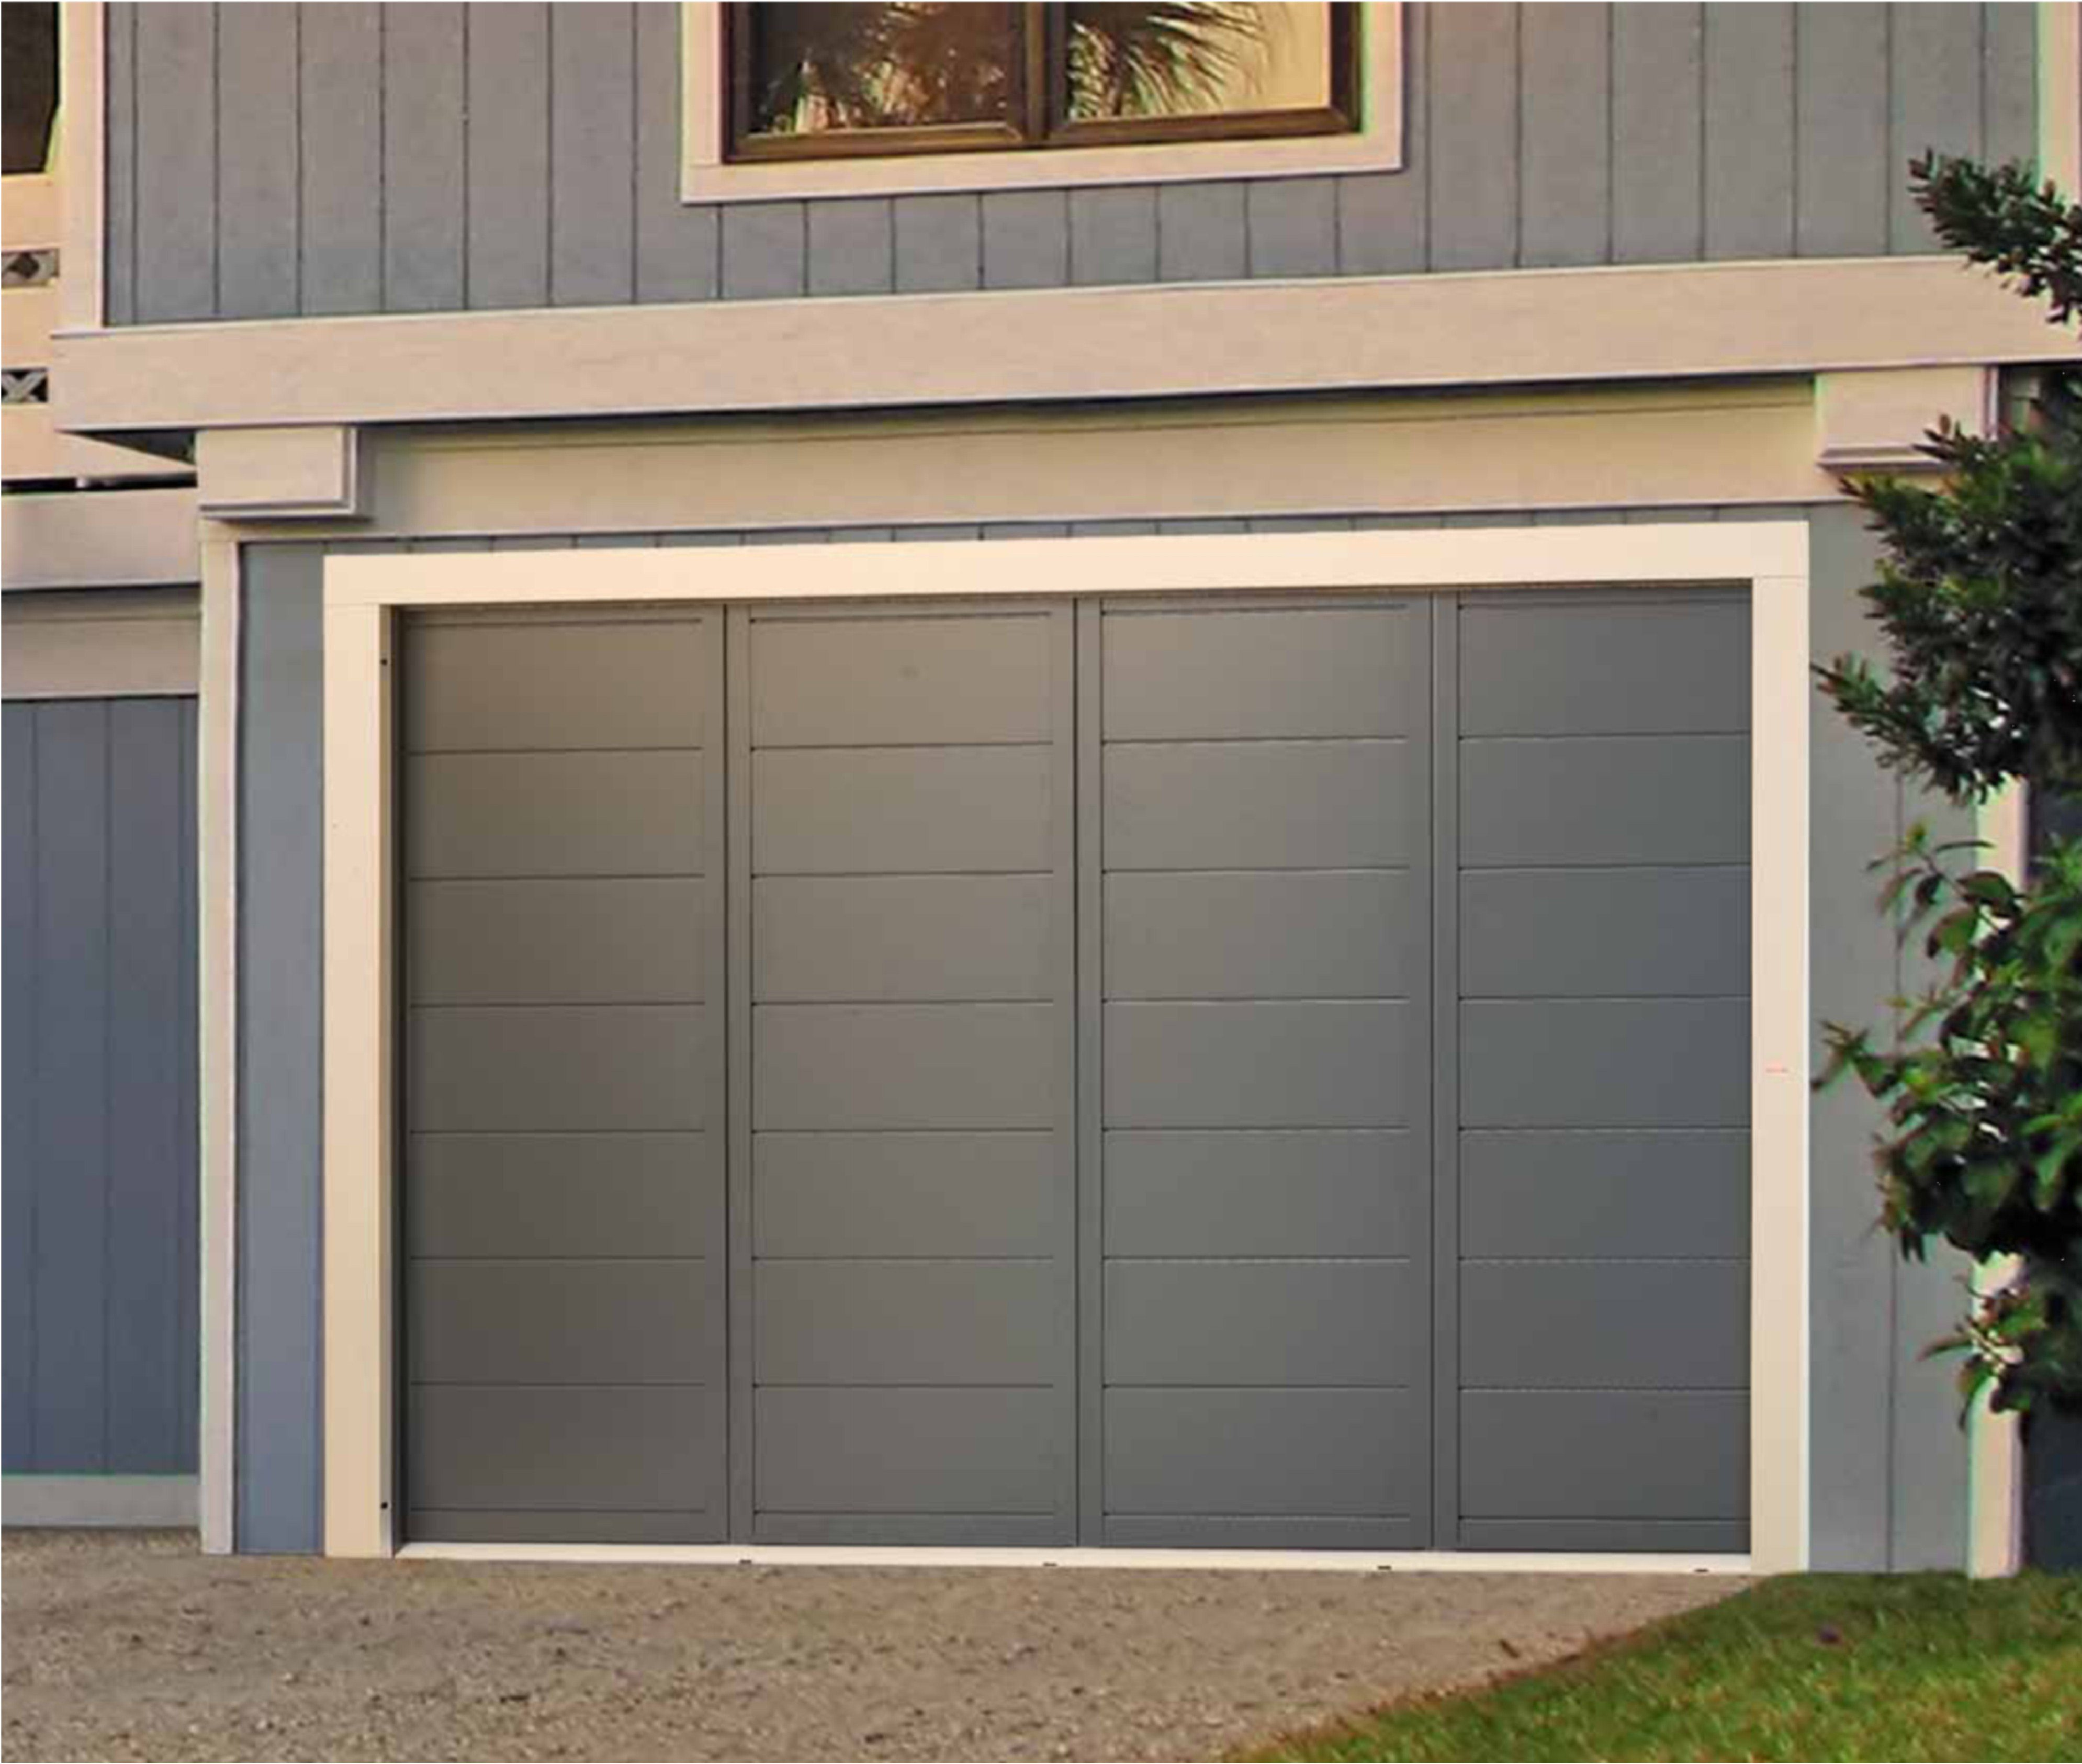 Porte de garage d placement lat ral christ al portail - Installer une porte de garage ...